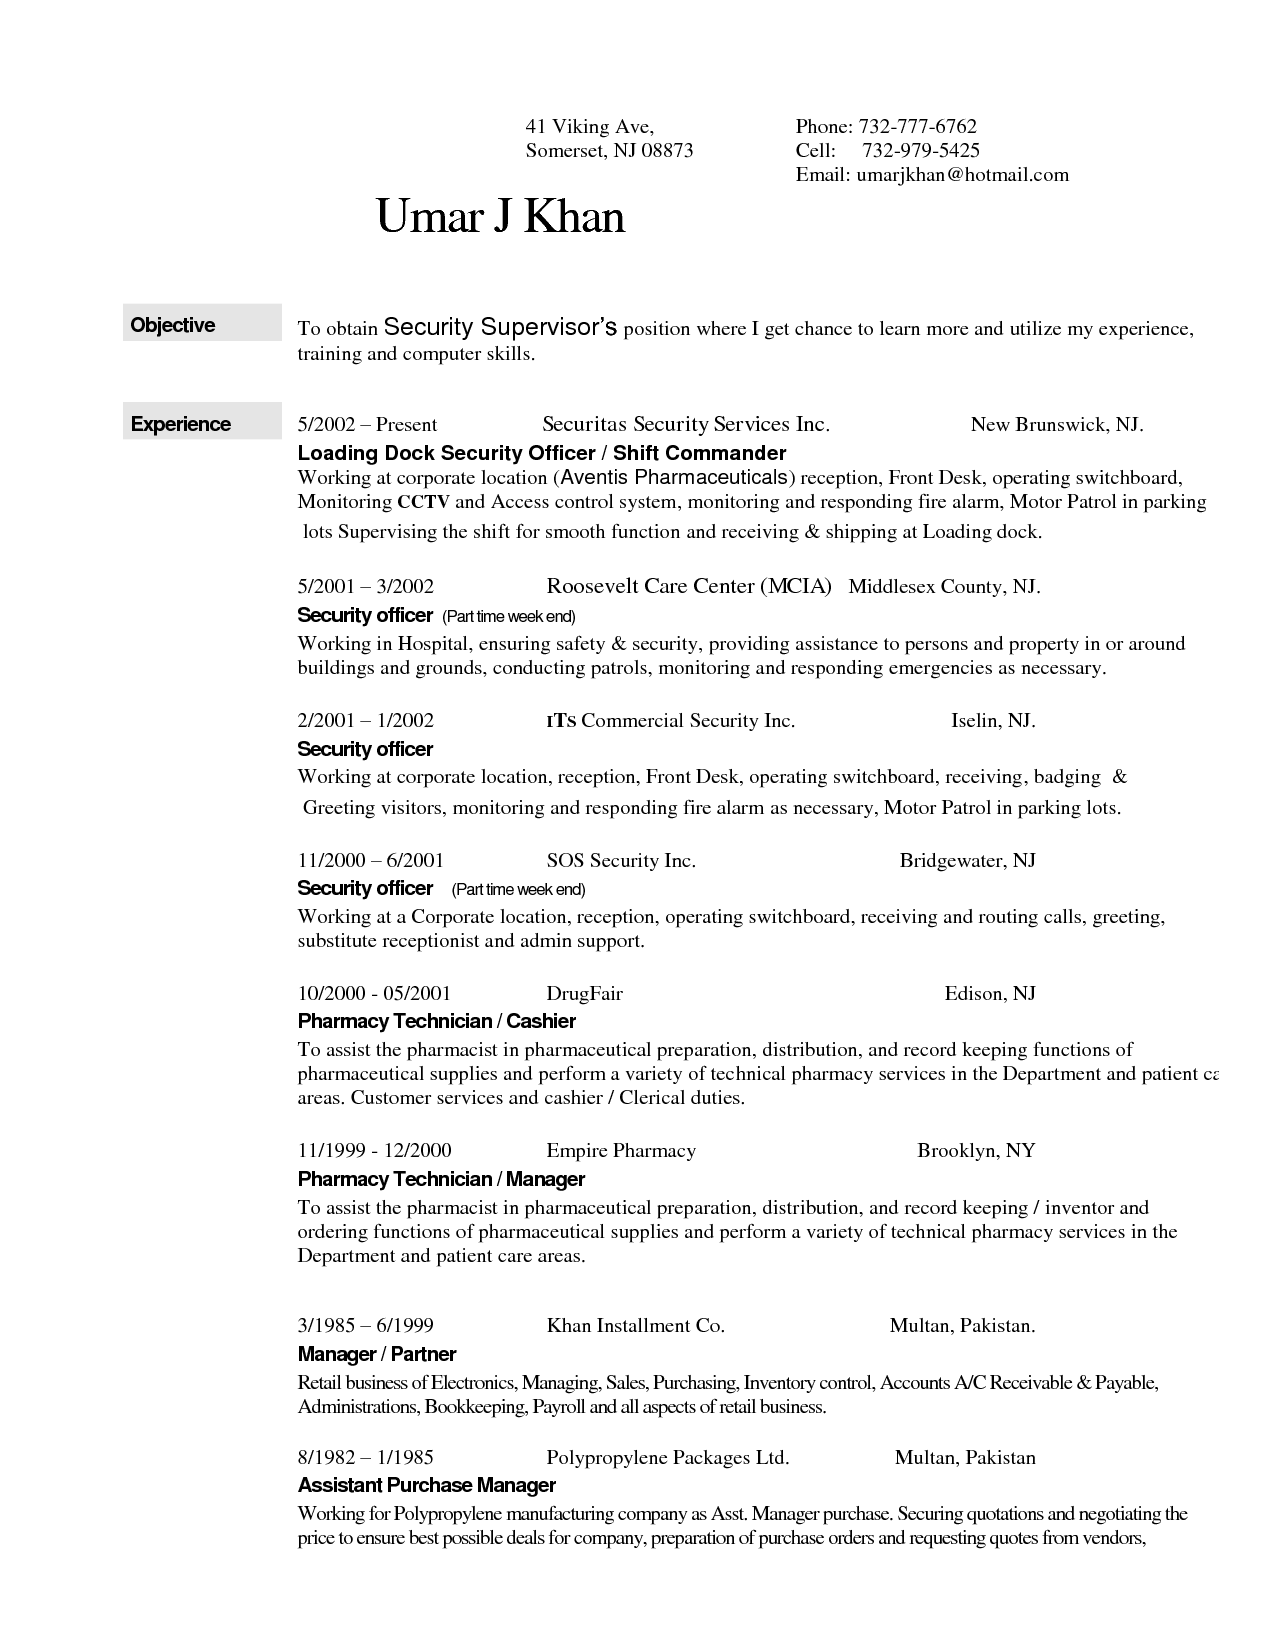 Pin By Latestresume On Latest Resume Pinterest Resume Sample